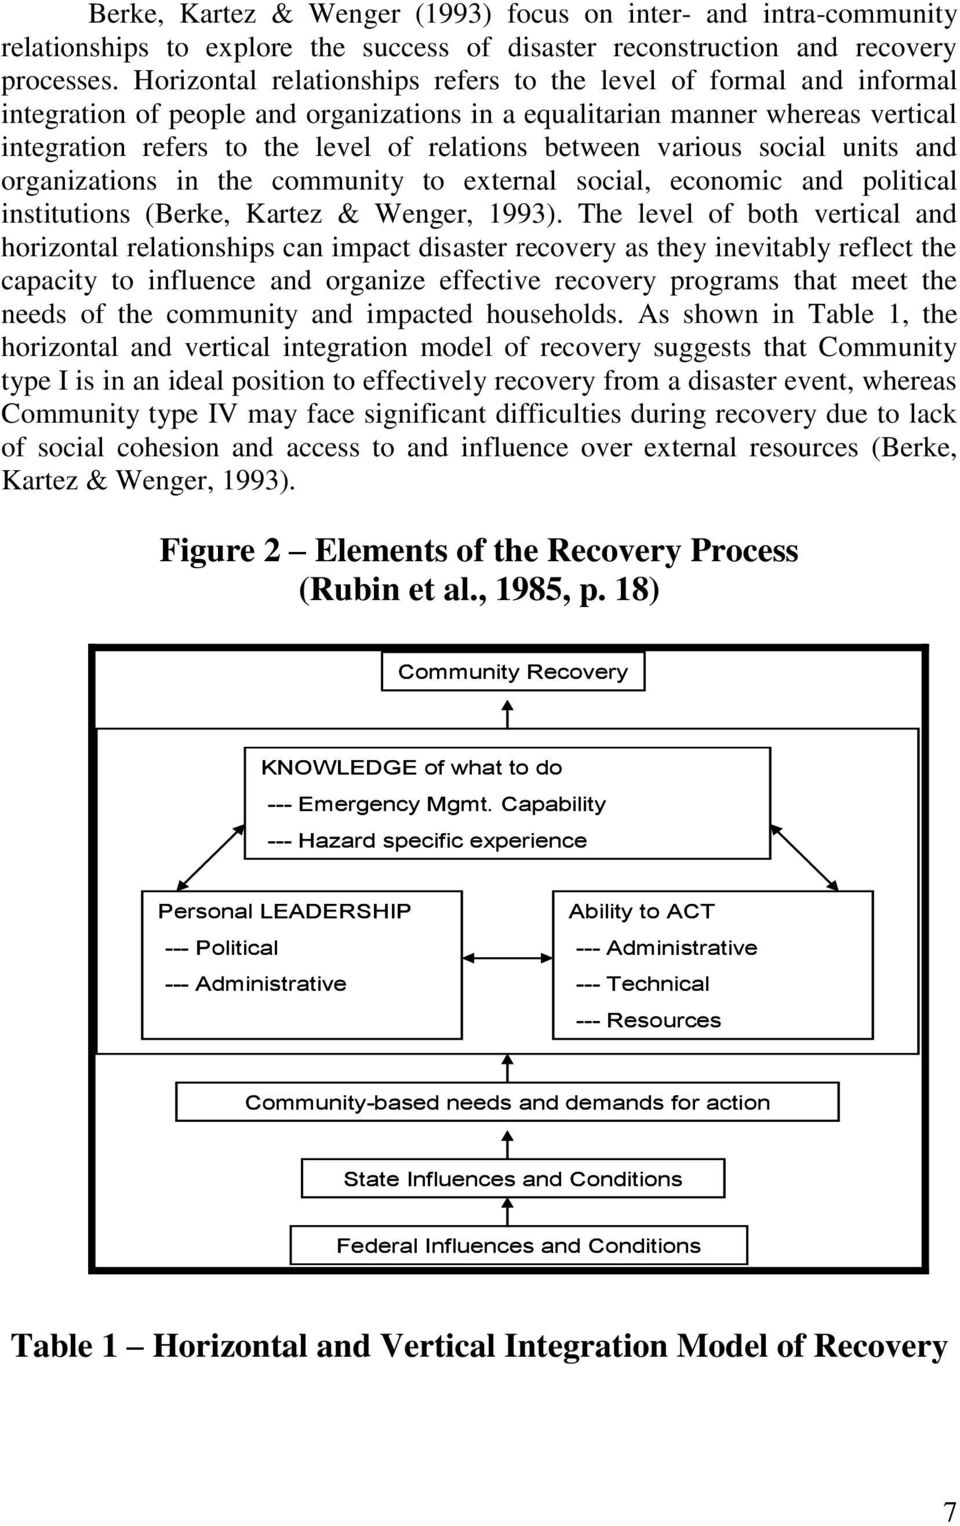 between various social units and organizations in the community to external social, economic and political institutions (Berke, Kartez & Wenger, 1993).